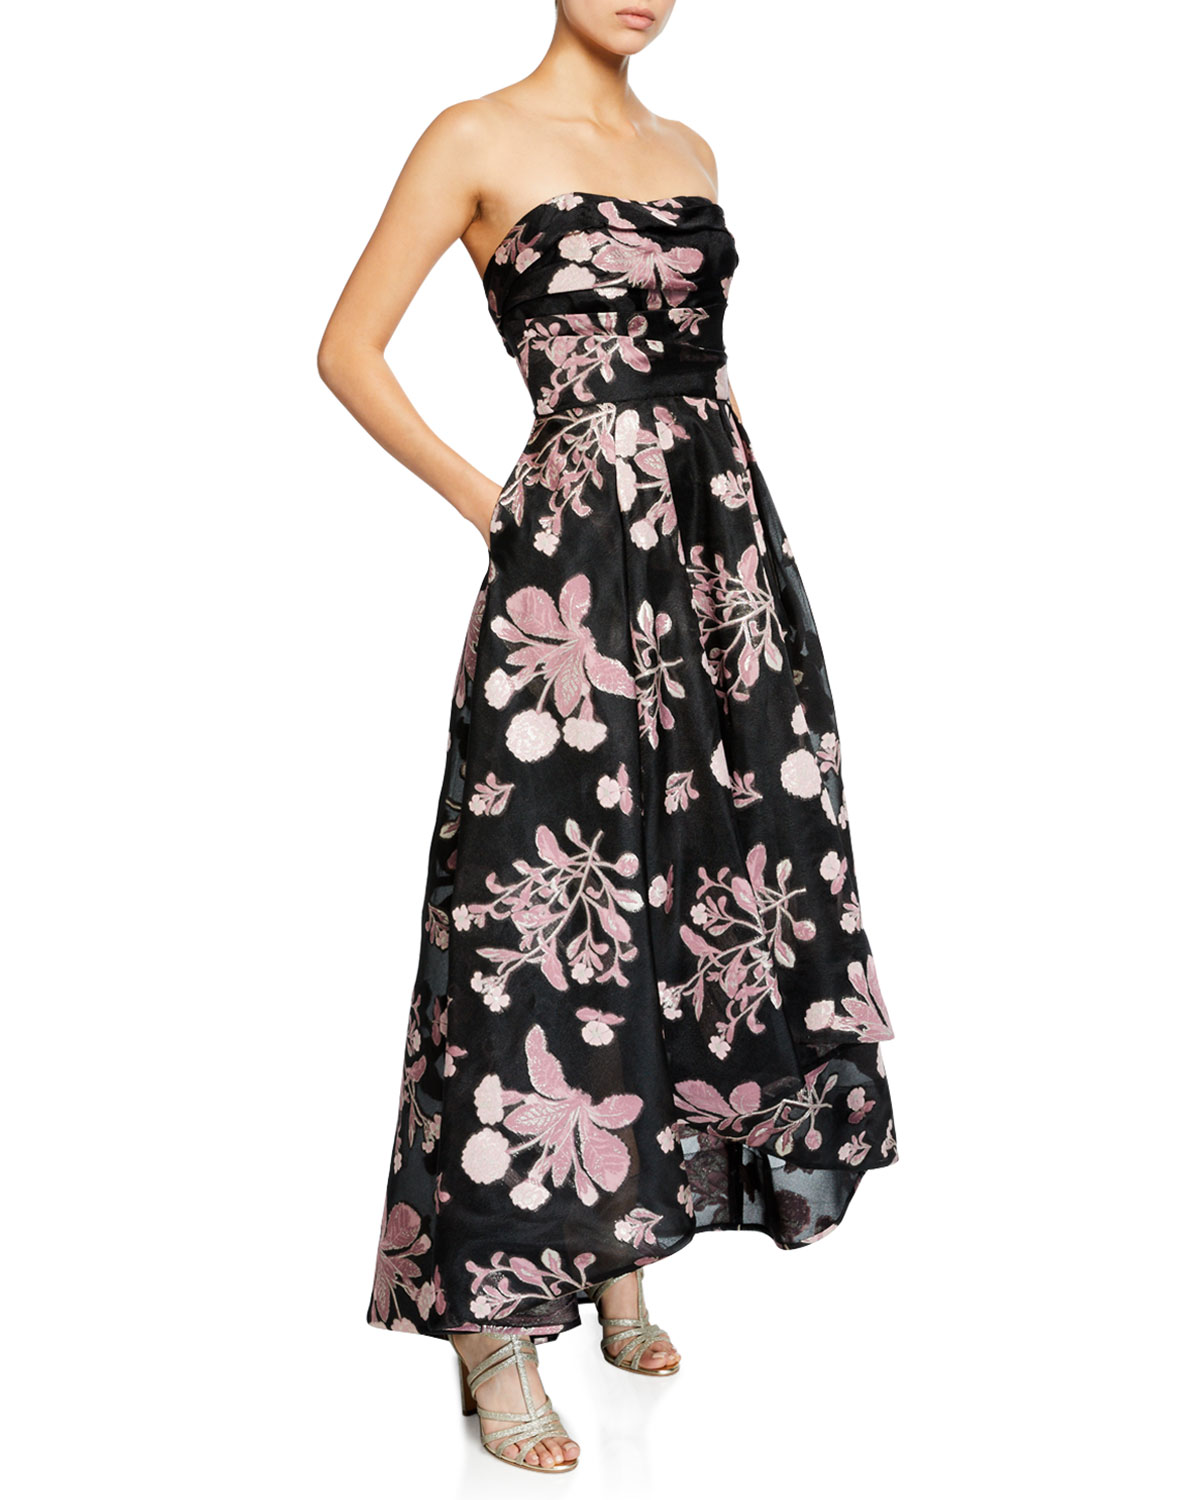 MARCHESA NOTTE Strapless Floral Embroidered High-Low Fil-Coupe Dress in Black